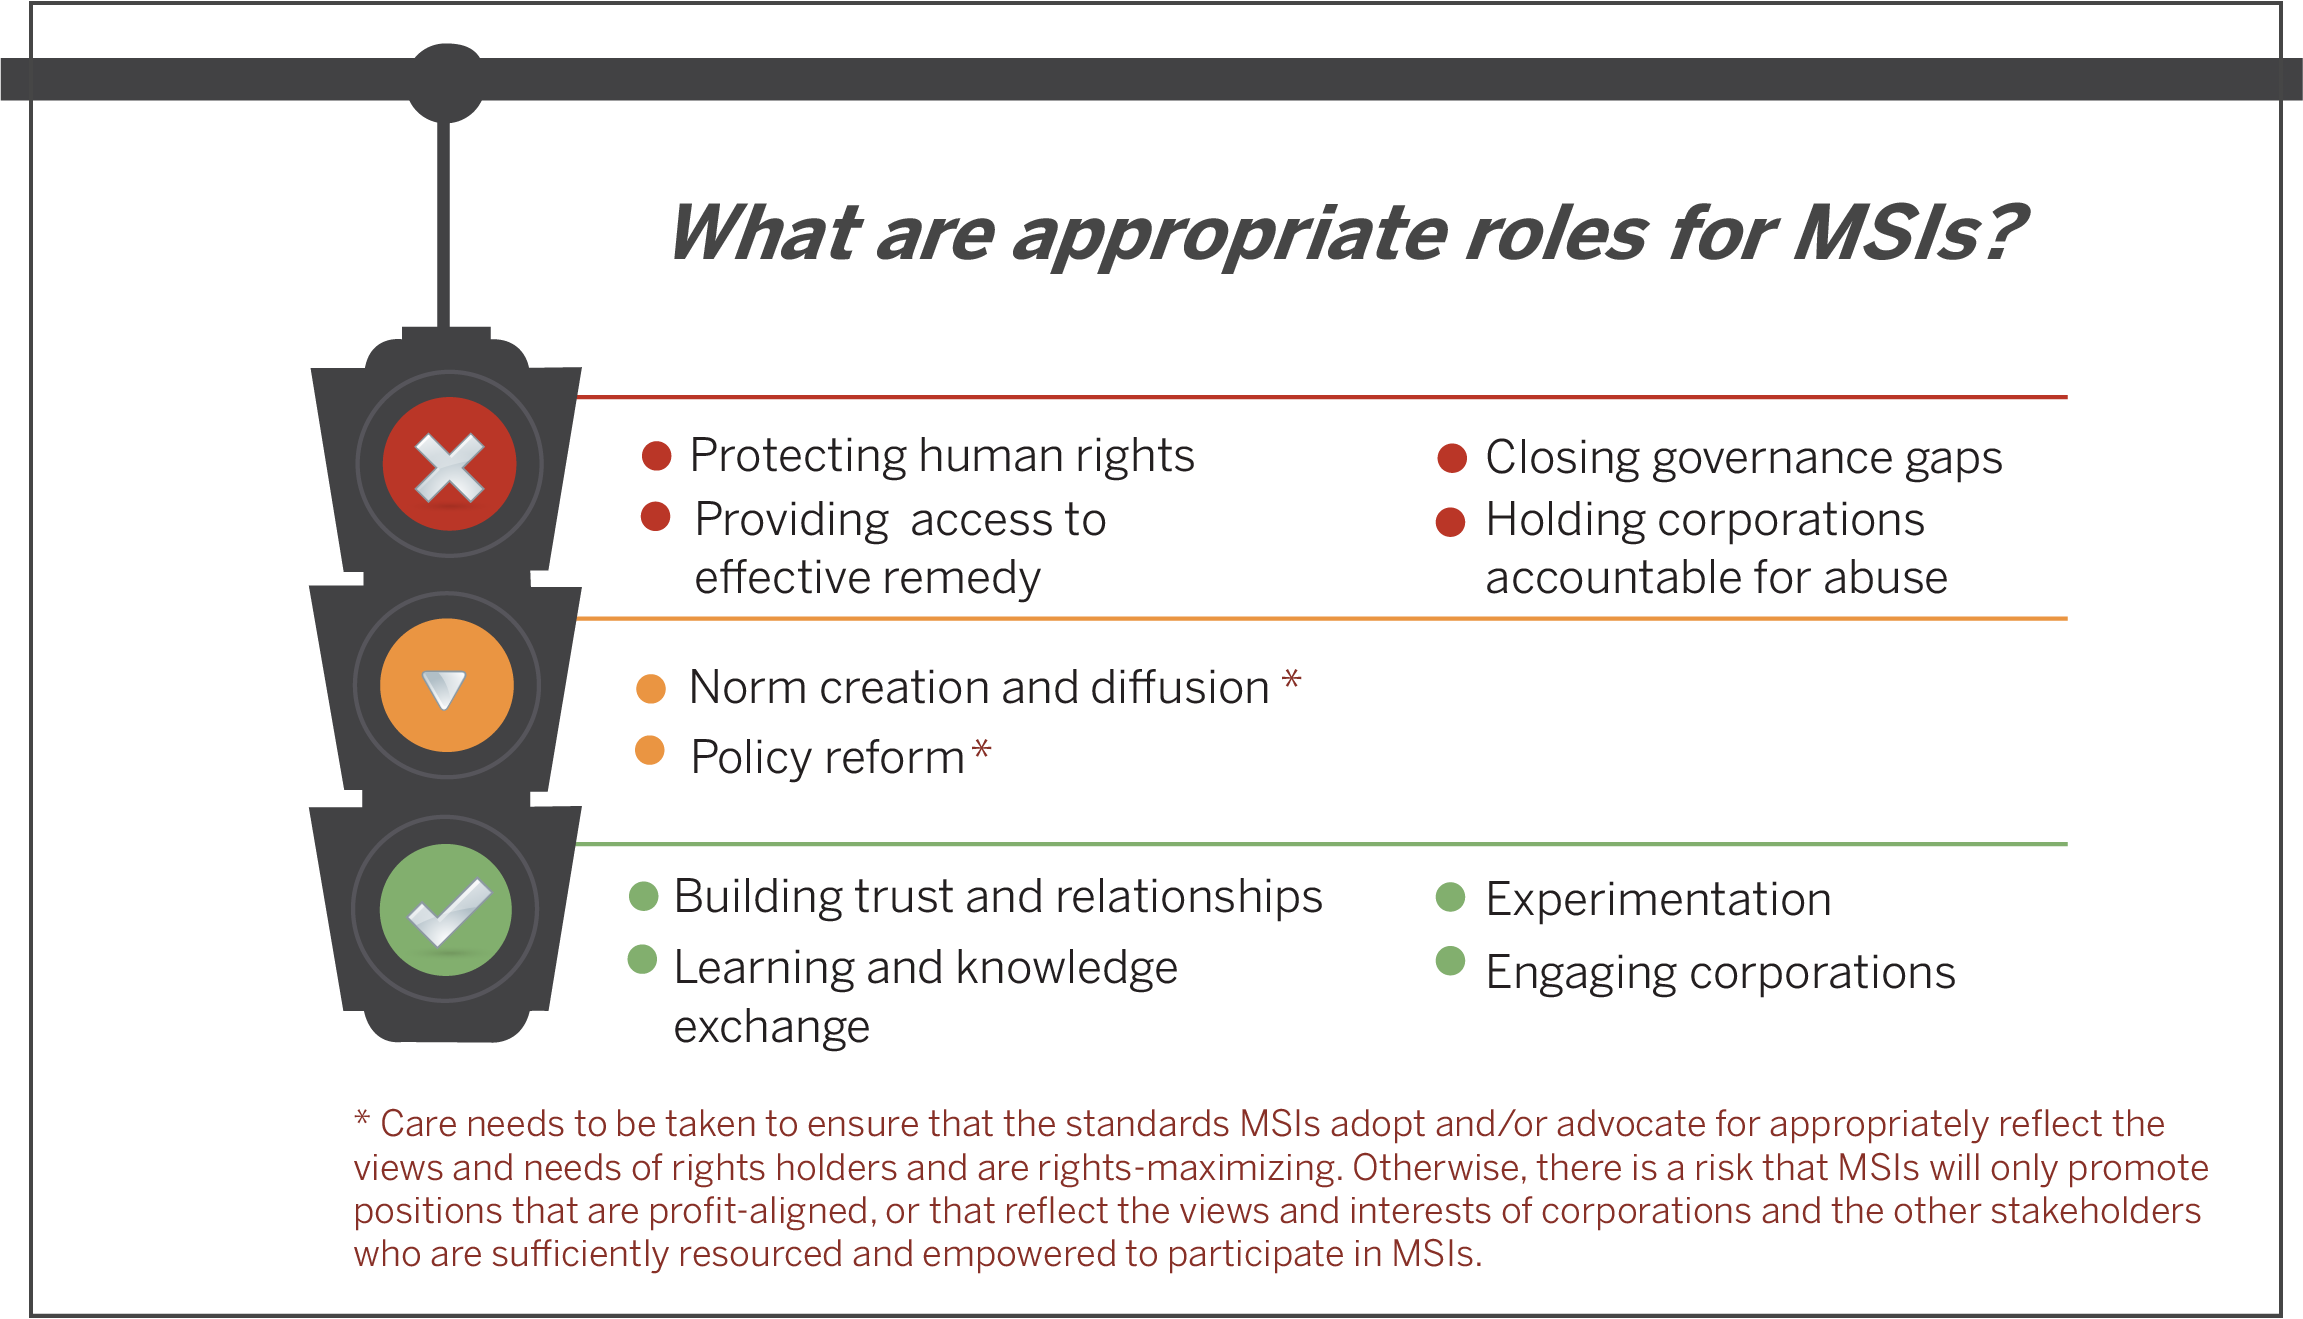 What are appropriate roles for MSIs?